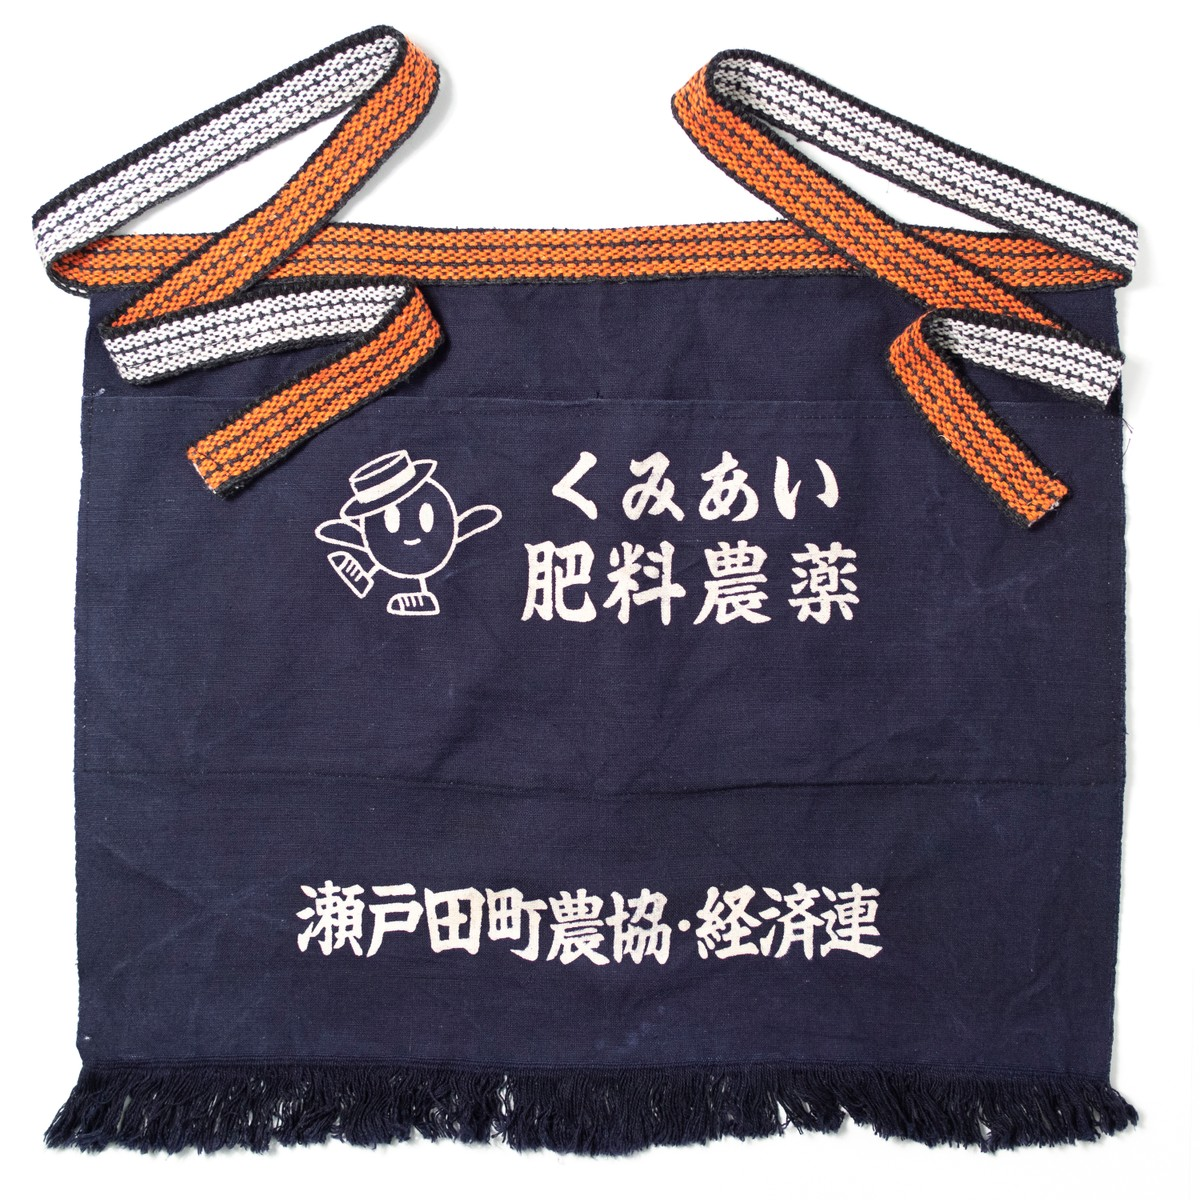 Photo of Vintage Maekake Apron: Setoda Fertiliser Company